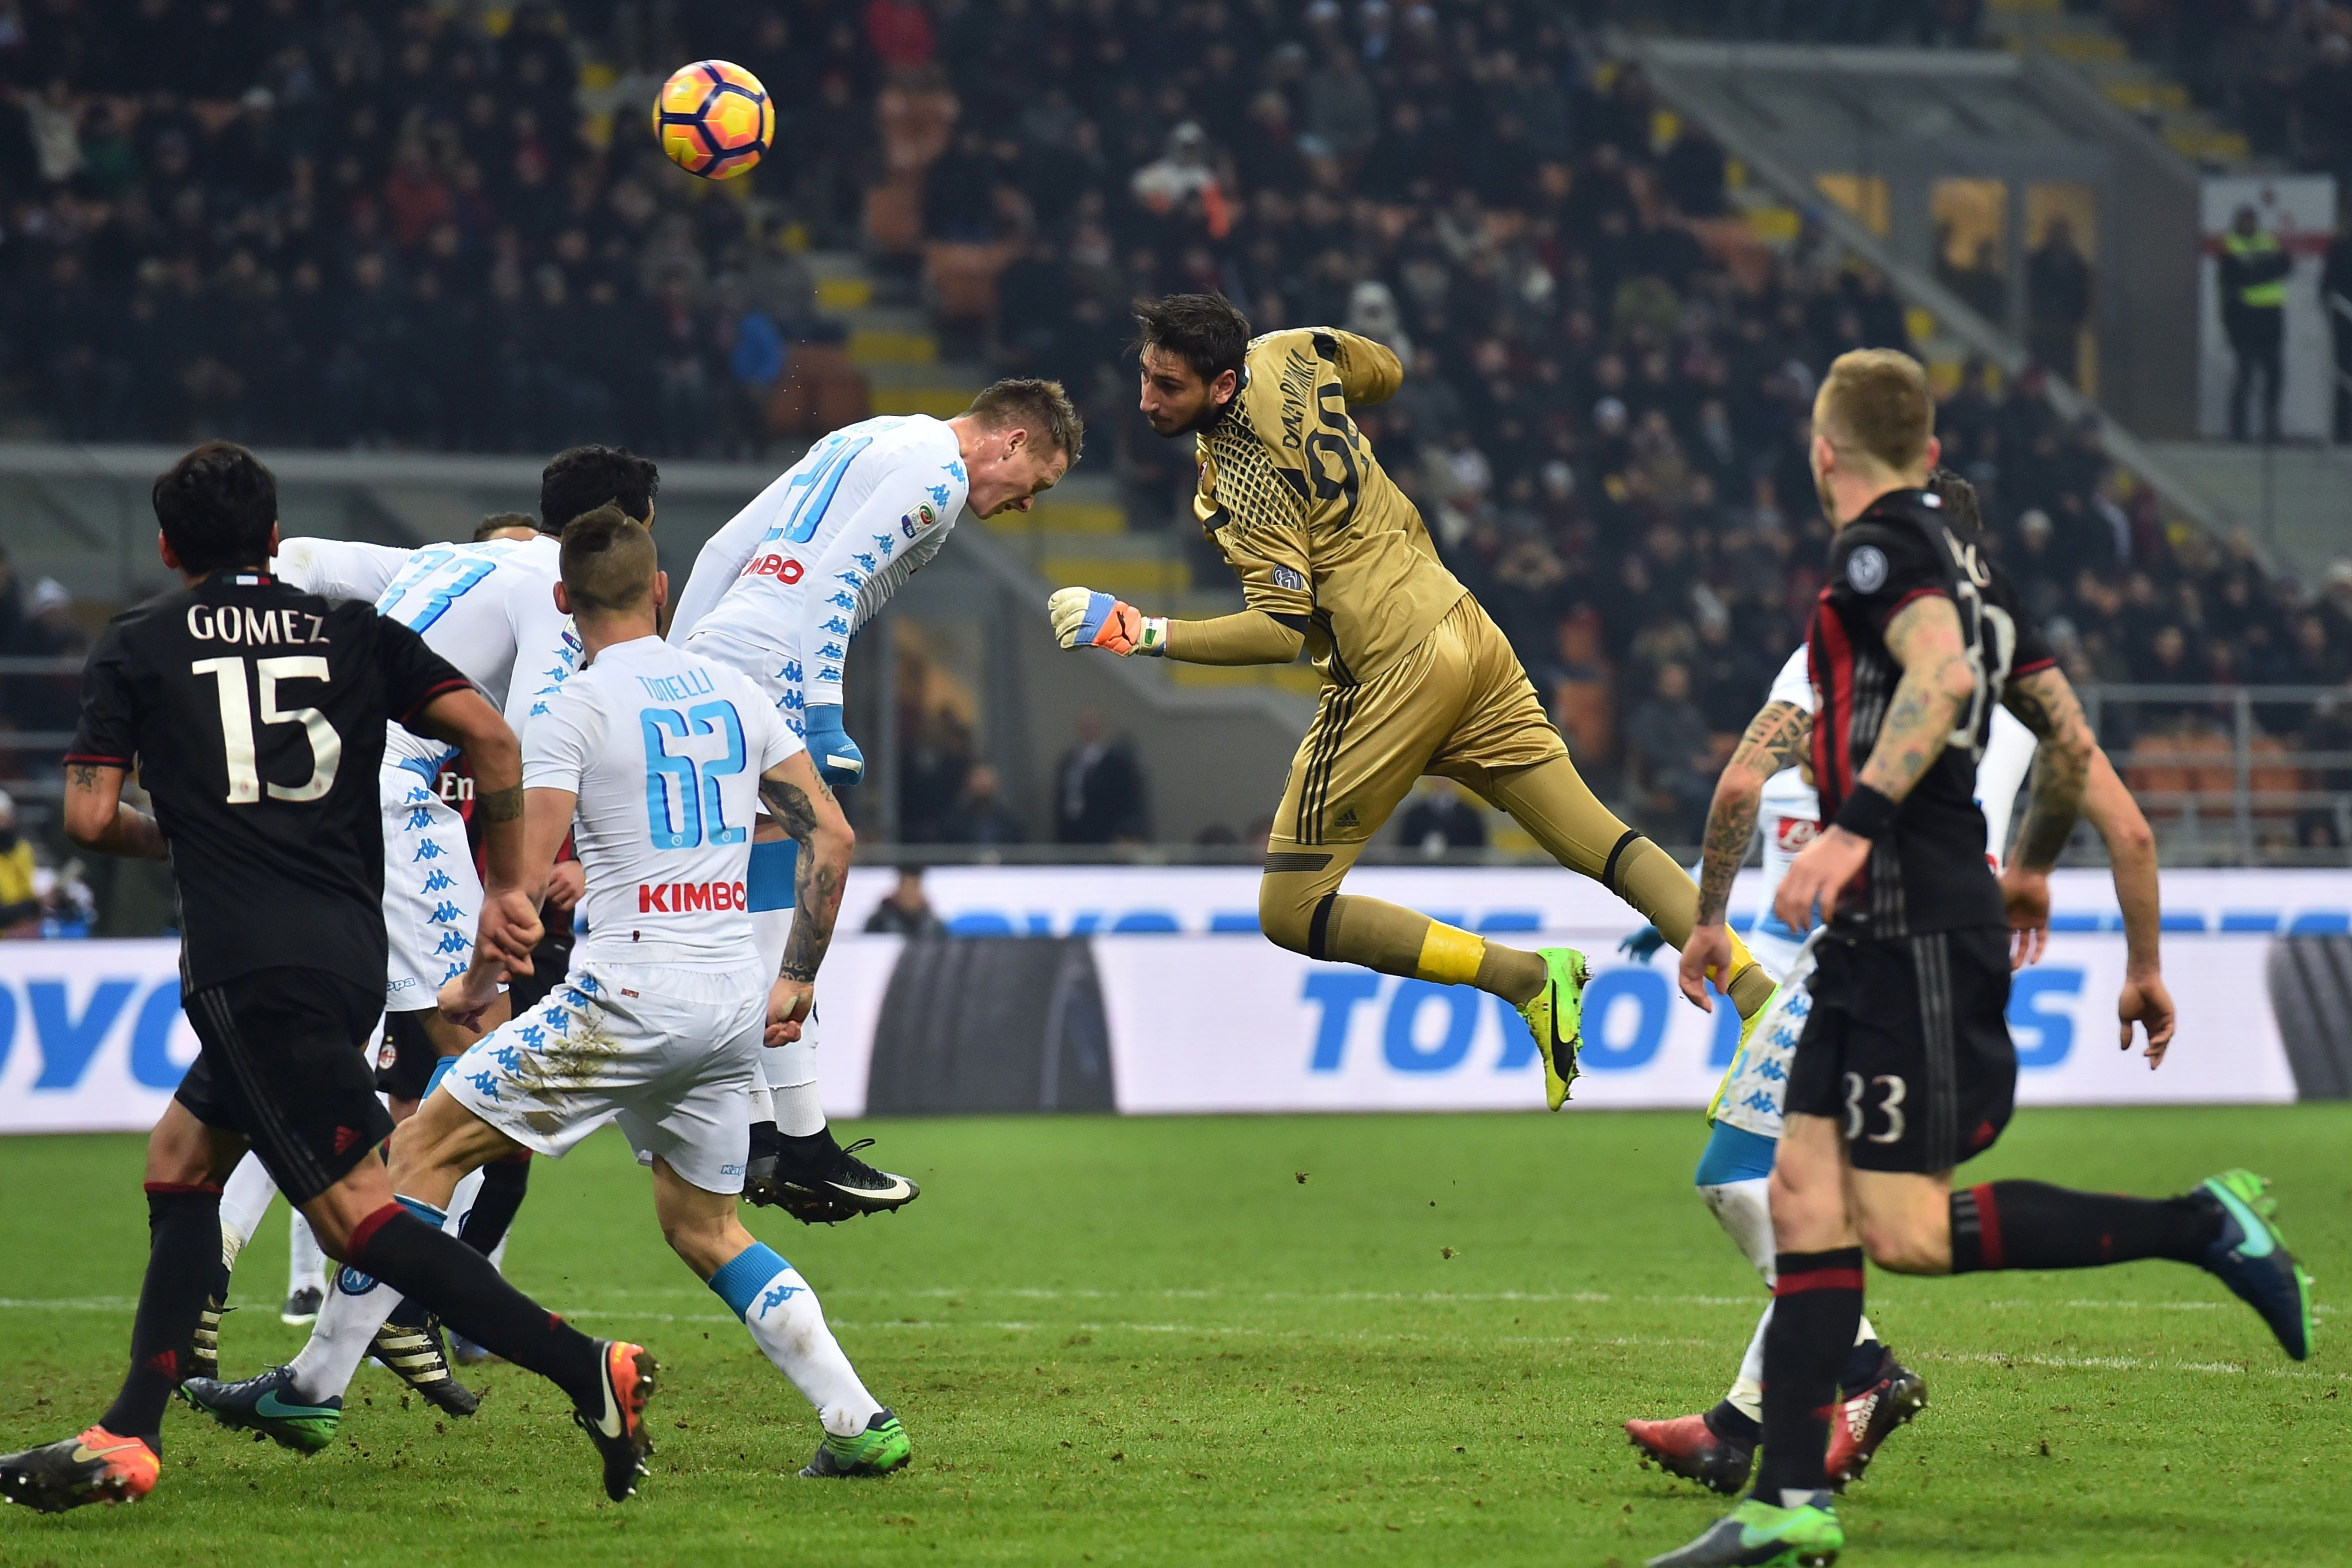 Ac milan vs napoly match images 6 Fashion Habits That Make You Look Old StyleCaster